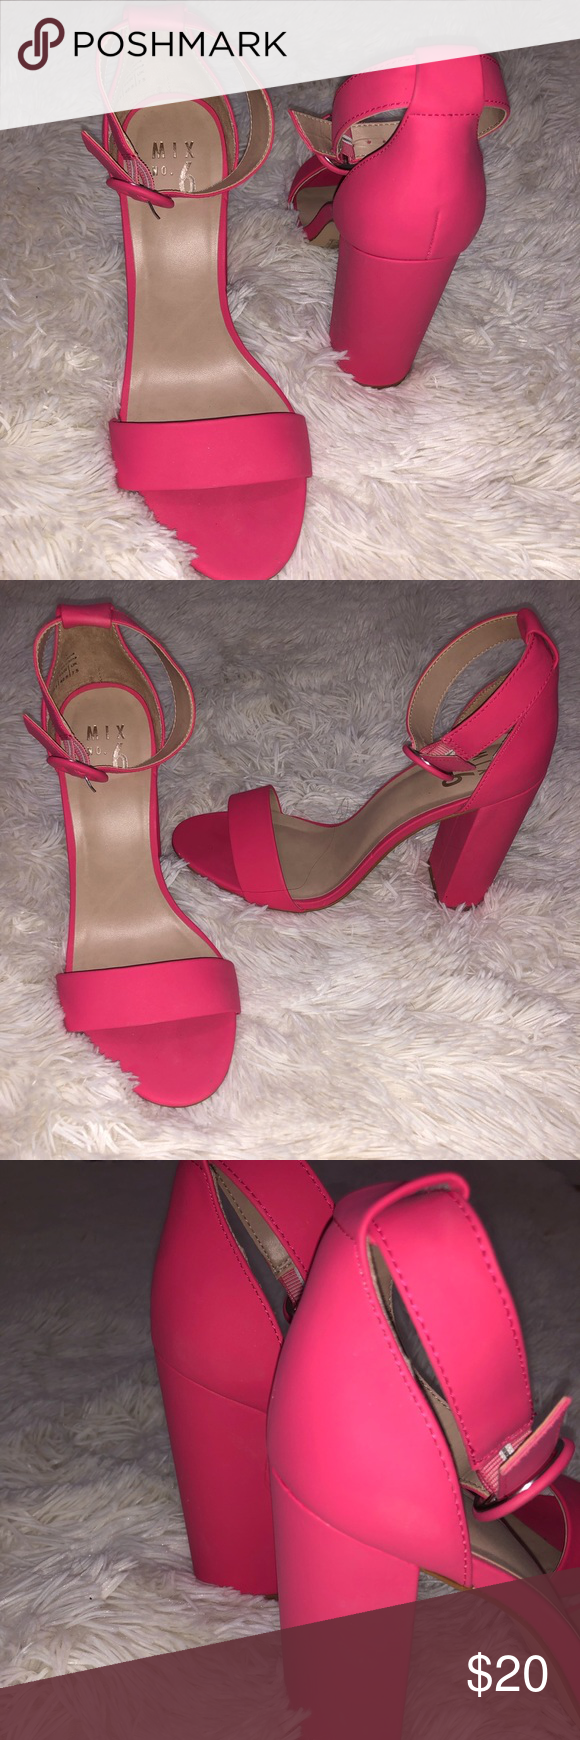 3bdcd0f5ea1 ✨🌟Mix No. 6 Pink Sandal Heels🌟✨ Worn 3 times!! In great ...